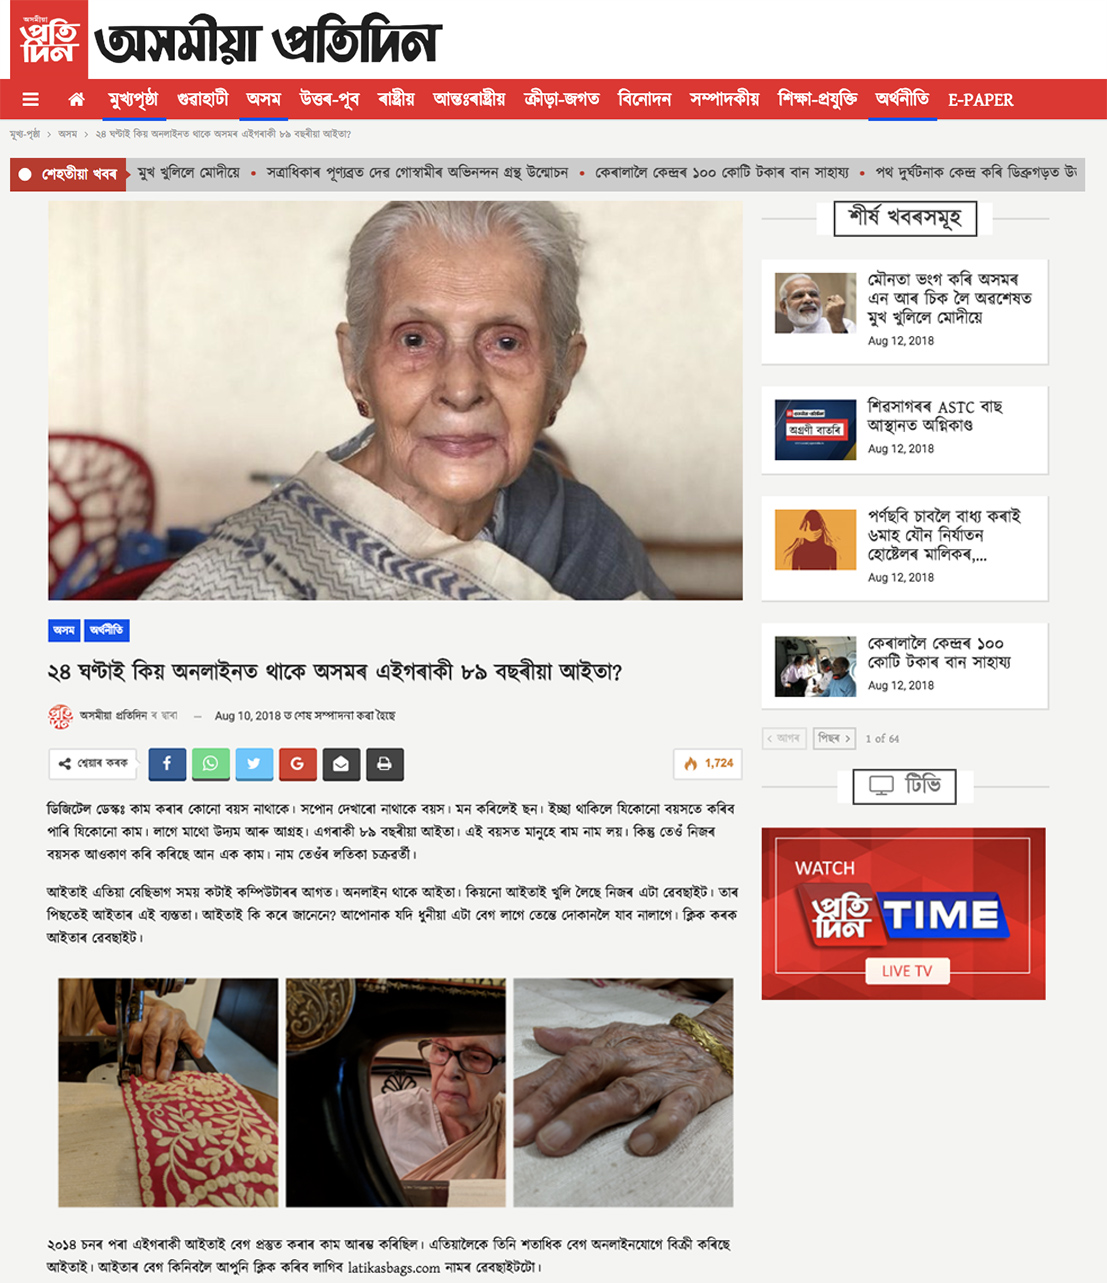 Asomiya Pratidin | 10 August 2018 | 89-year old Latika Chakravarty from Assam selling homemade handbags online